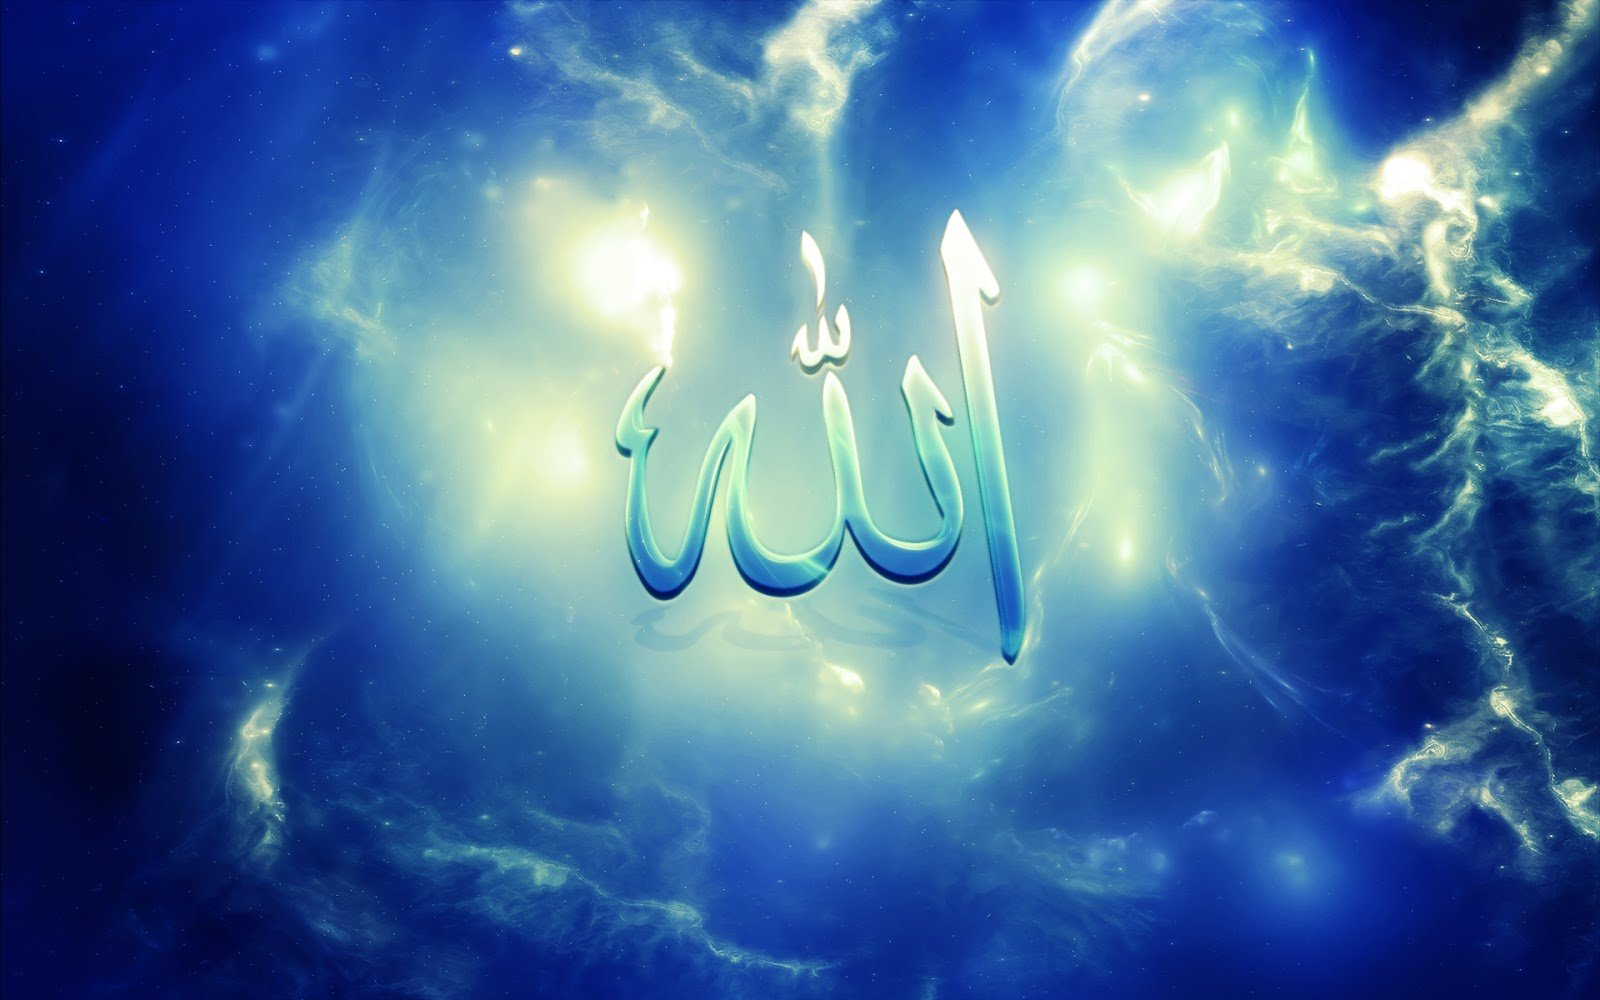 ALLAH Name High Definition Wallpapers Download 1600x1000